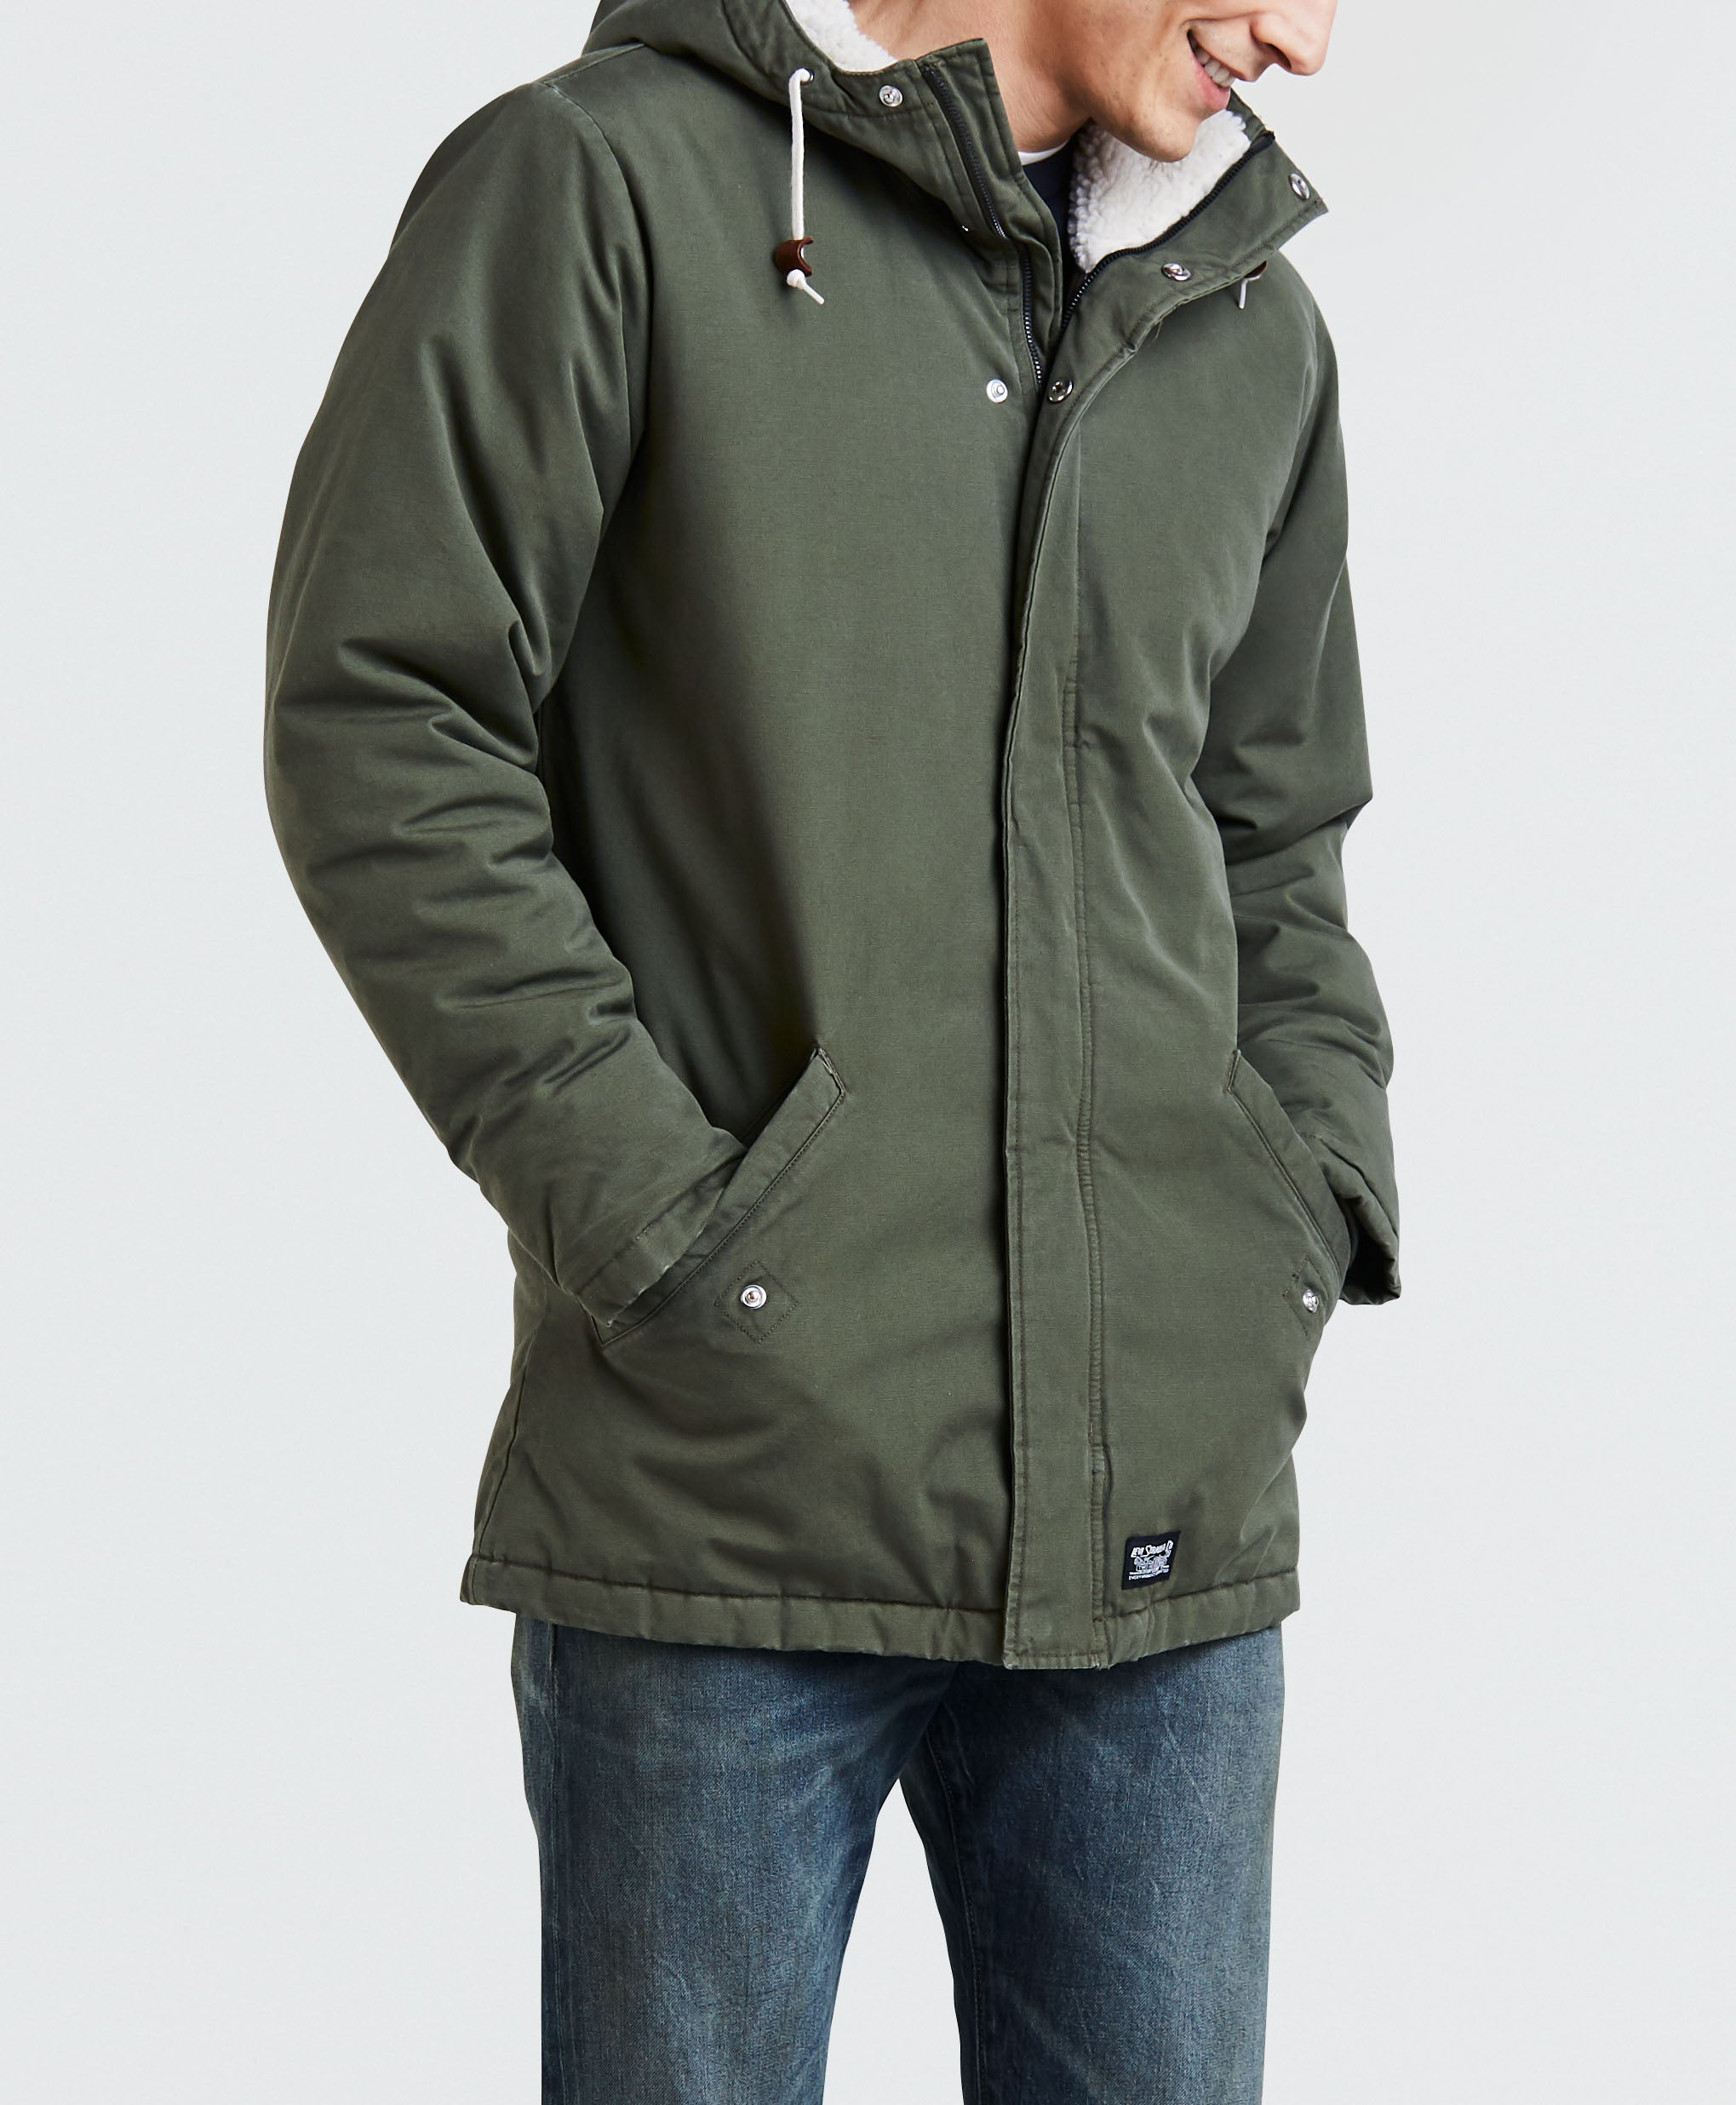 9a15d7dca Levis Thermore Padded Parka Jacket - Olive Night | Country Attire